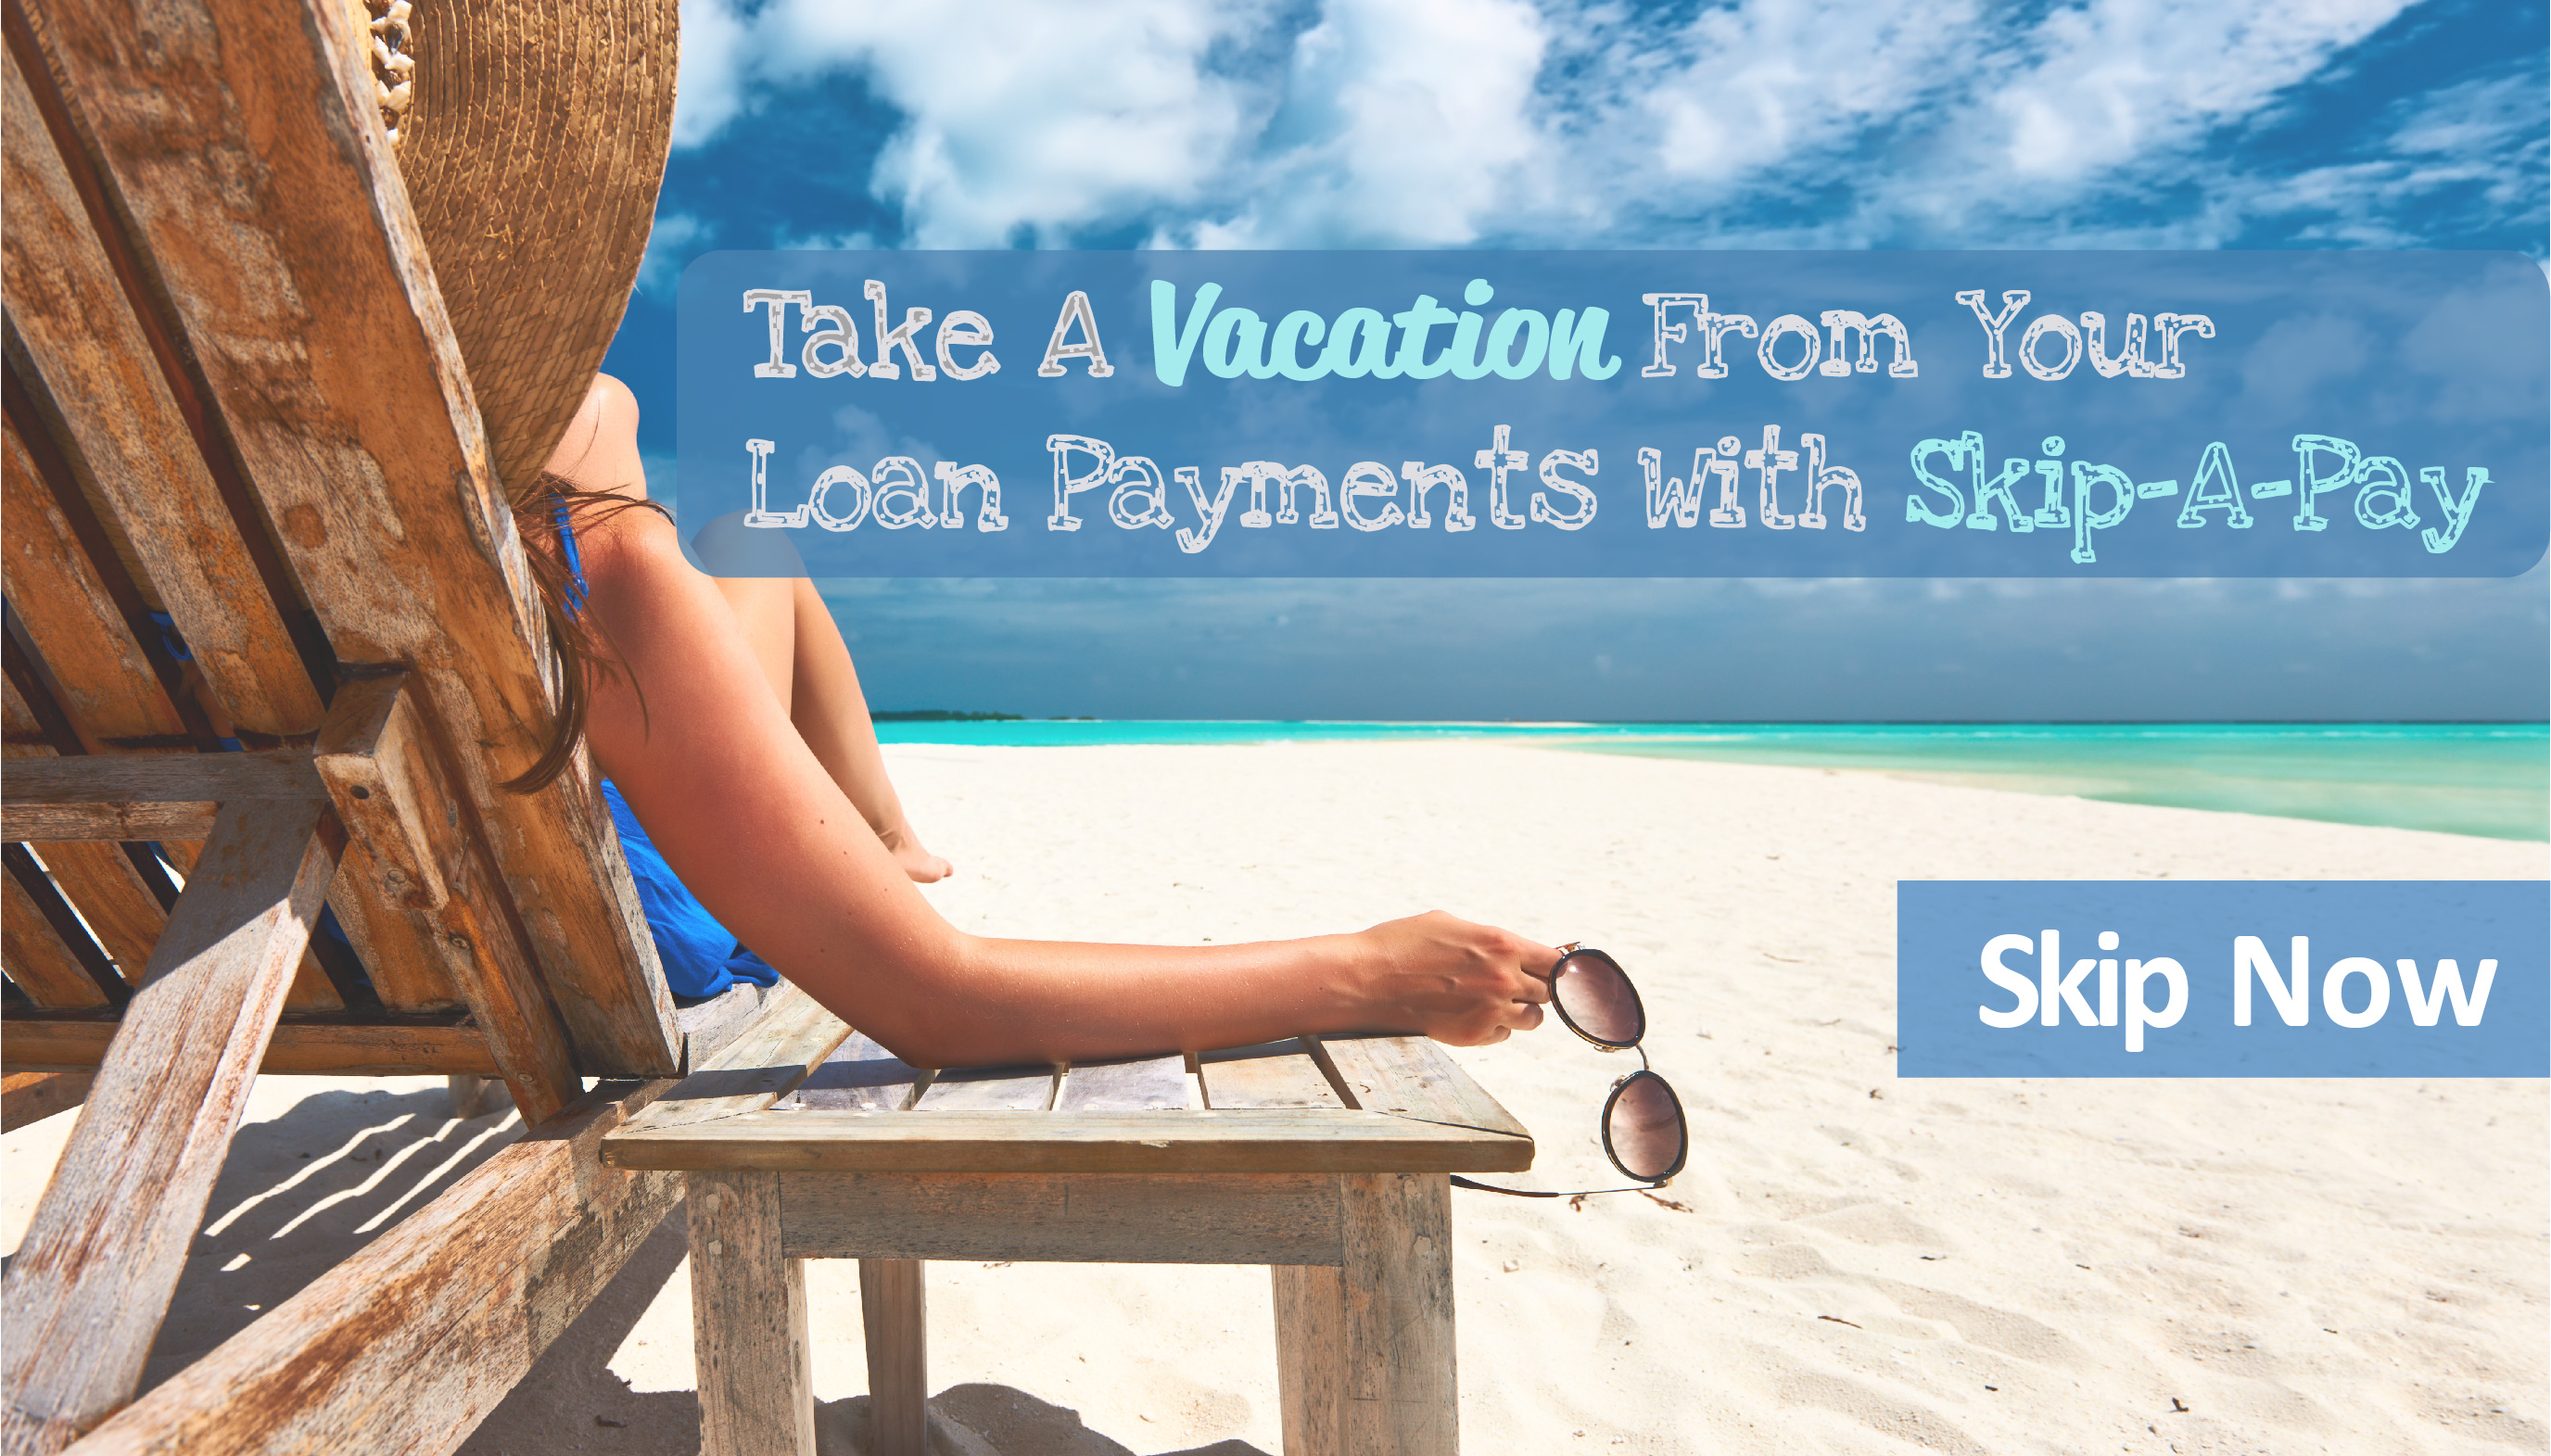 Skip a Payment this Summer!